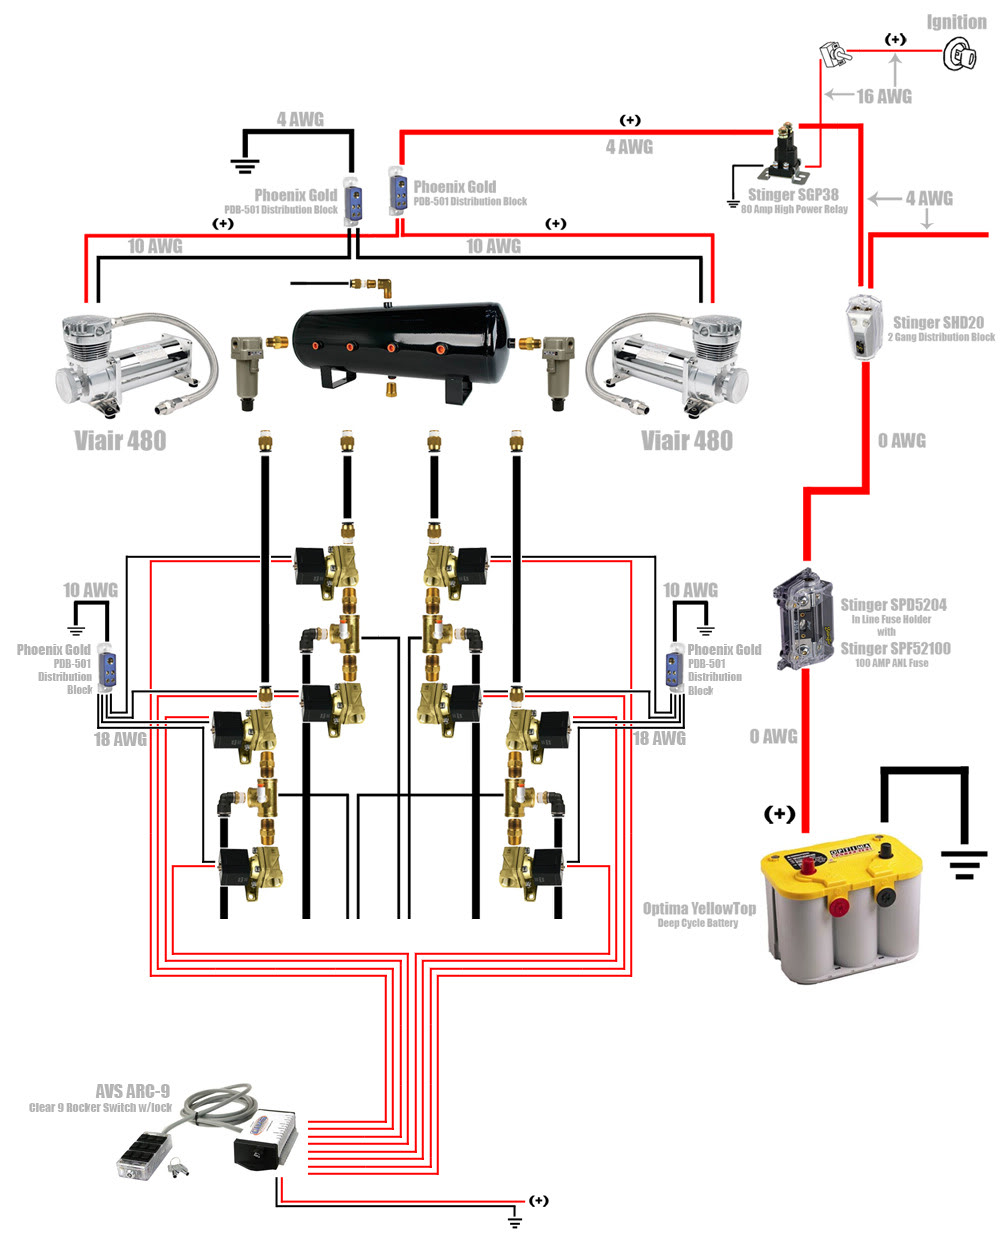 112076d1431716929 uas bags install compressor_wiring2?resize=665%2C817 viair 480c wiring diagram viair wiring diagrams collection viair 380c air compressor wiring diagram at reclaimingppi.co